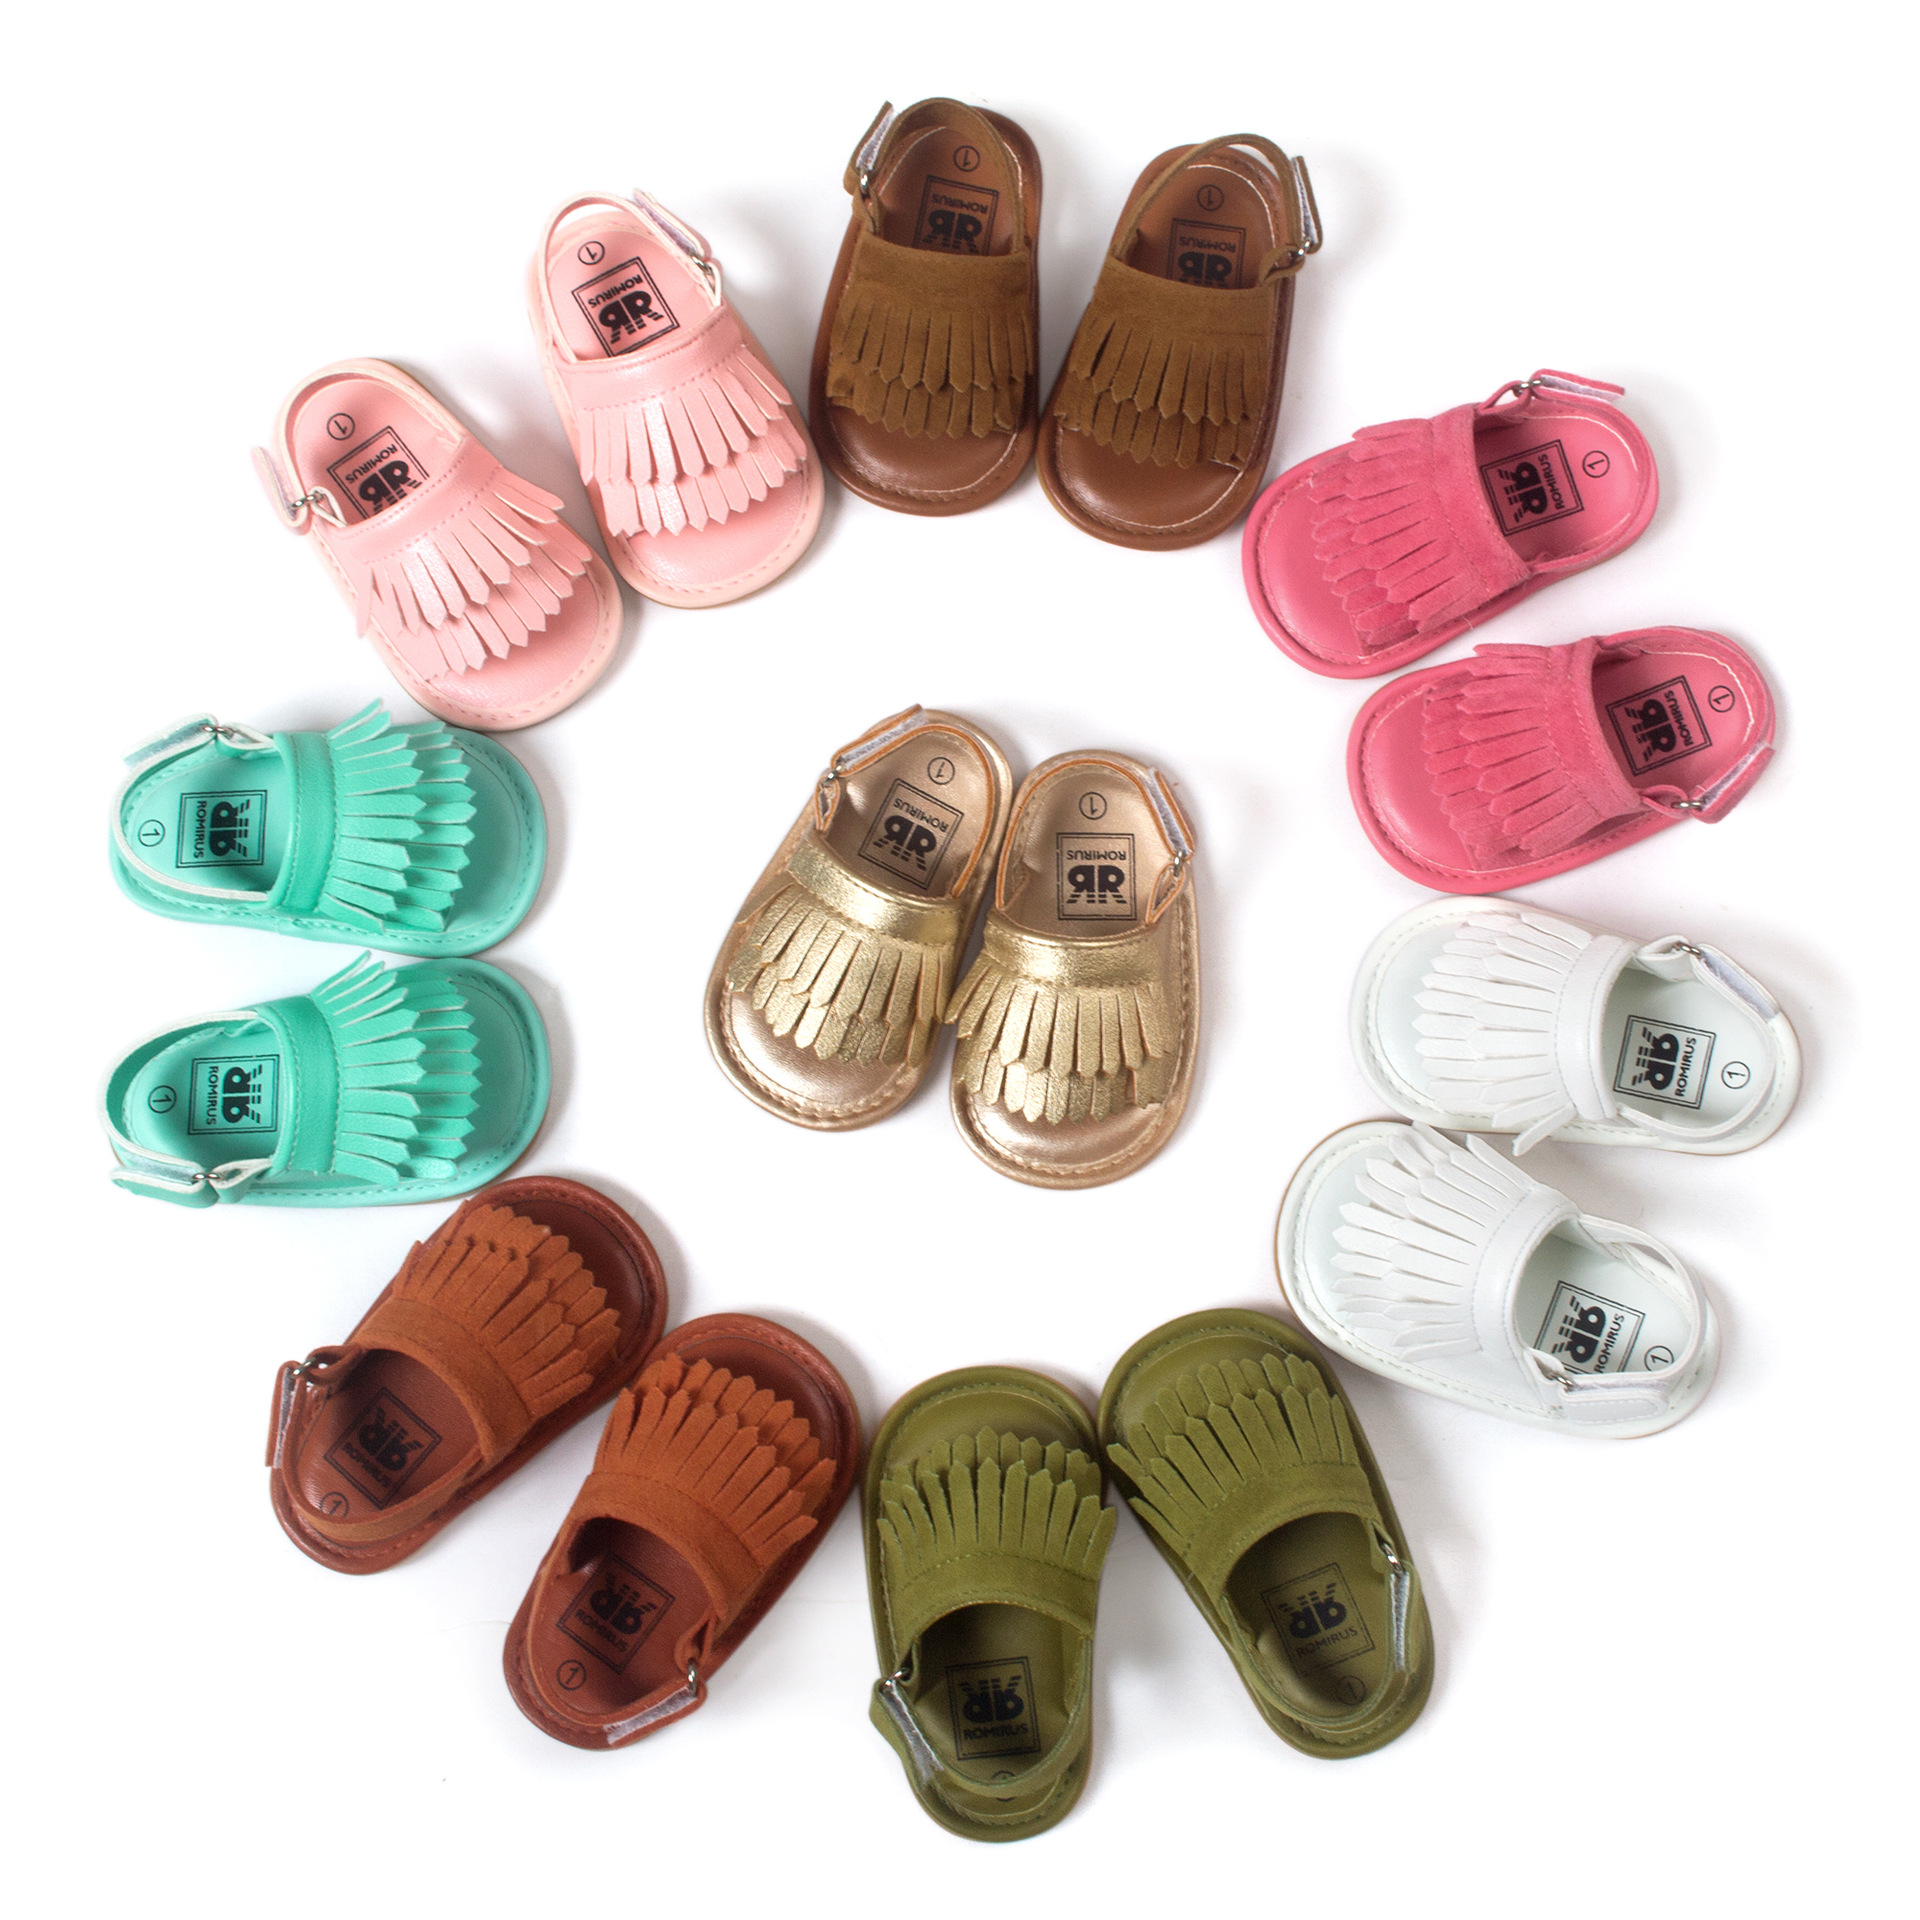 ad974f248d90e 2019 2016 Tassels Toddler Sandals Baby Moccasins Shoes Infant Girls Boys  Soft Sole Leather Moccs Baby First Walkers Kids Footwear From Yuan0907, ...